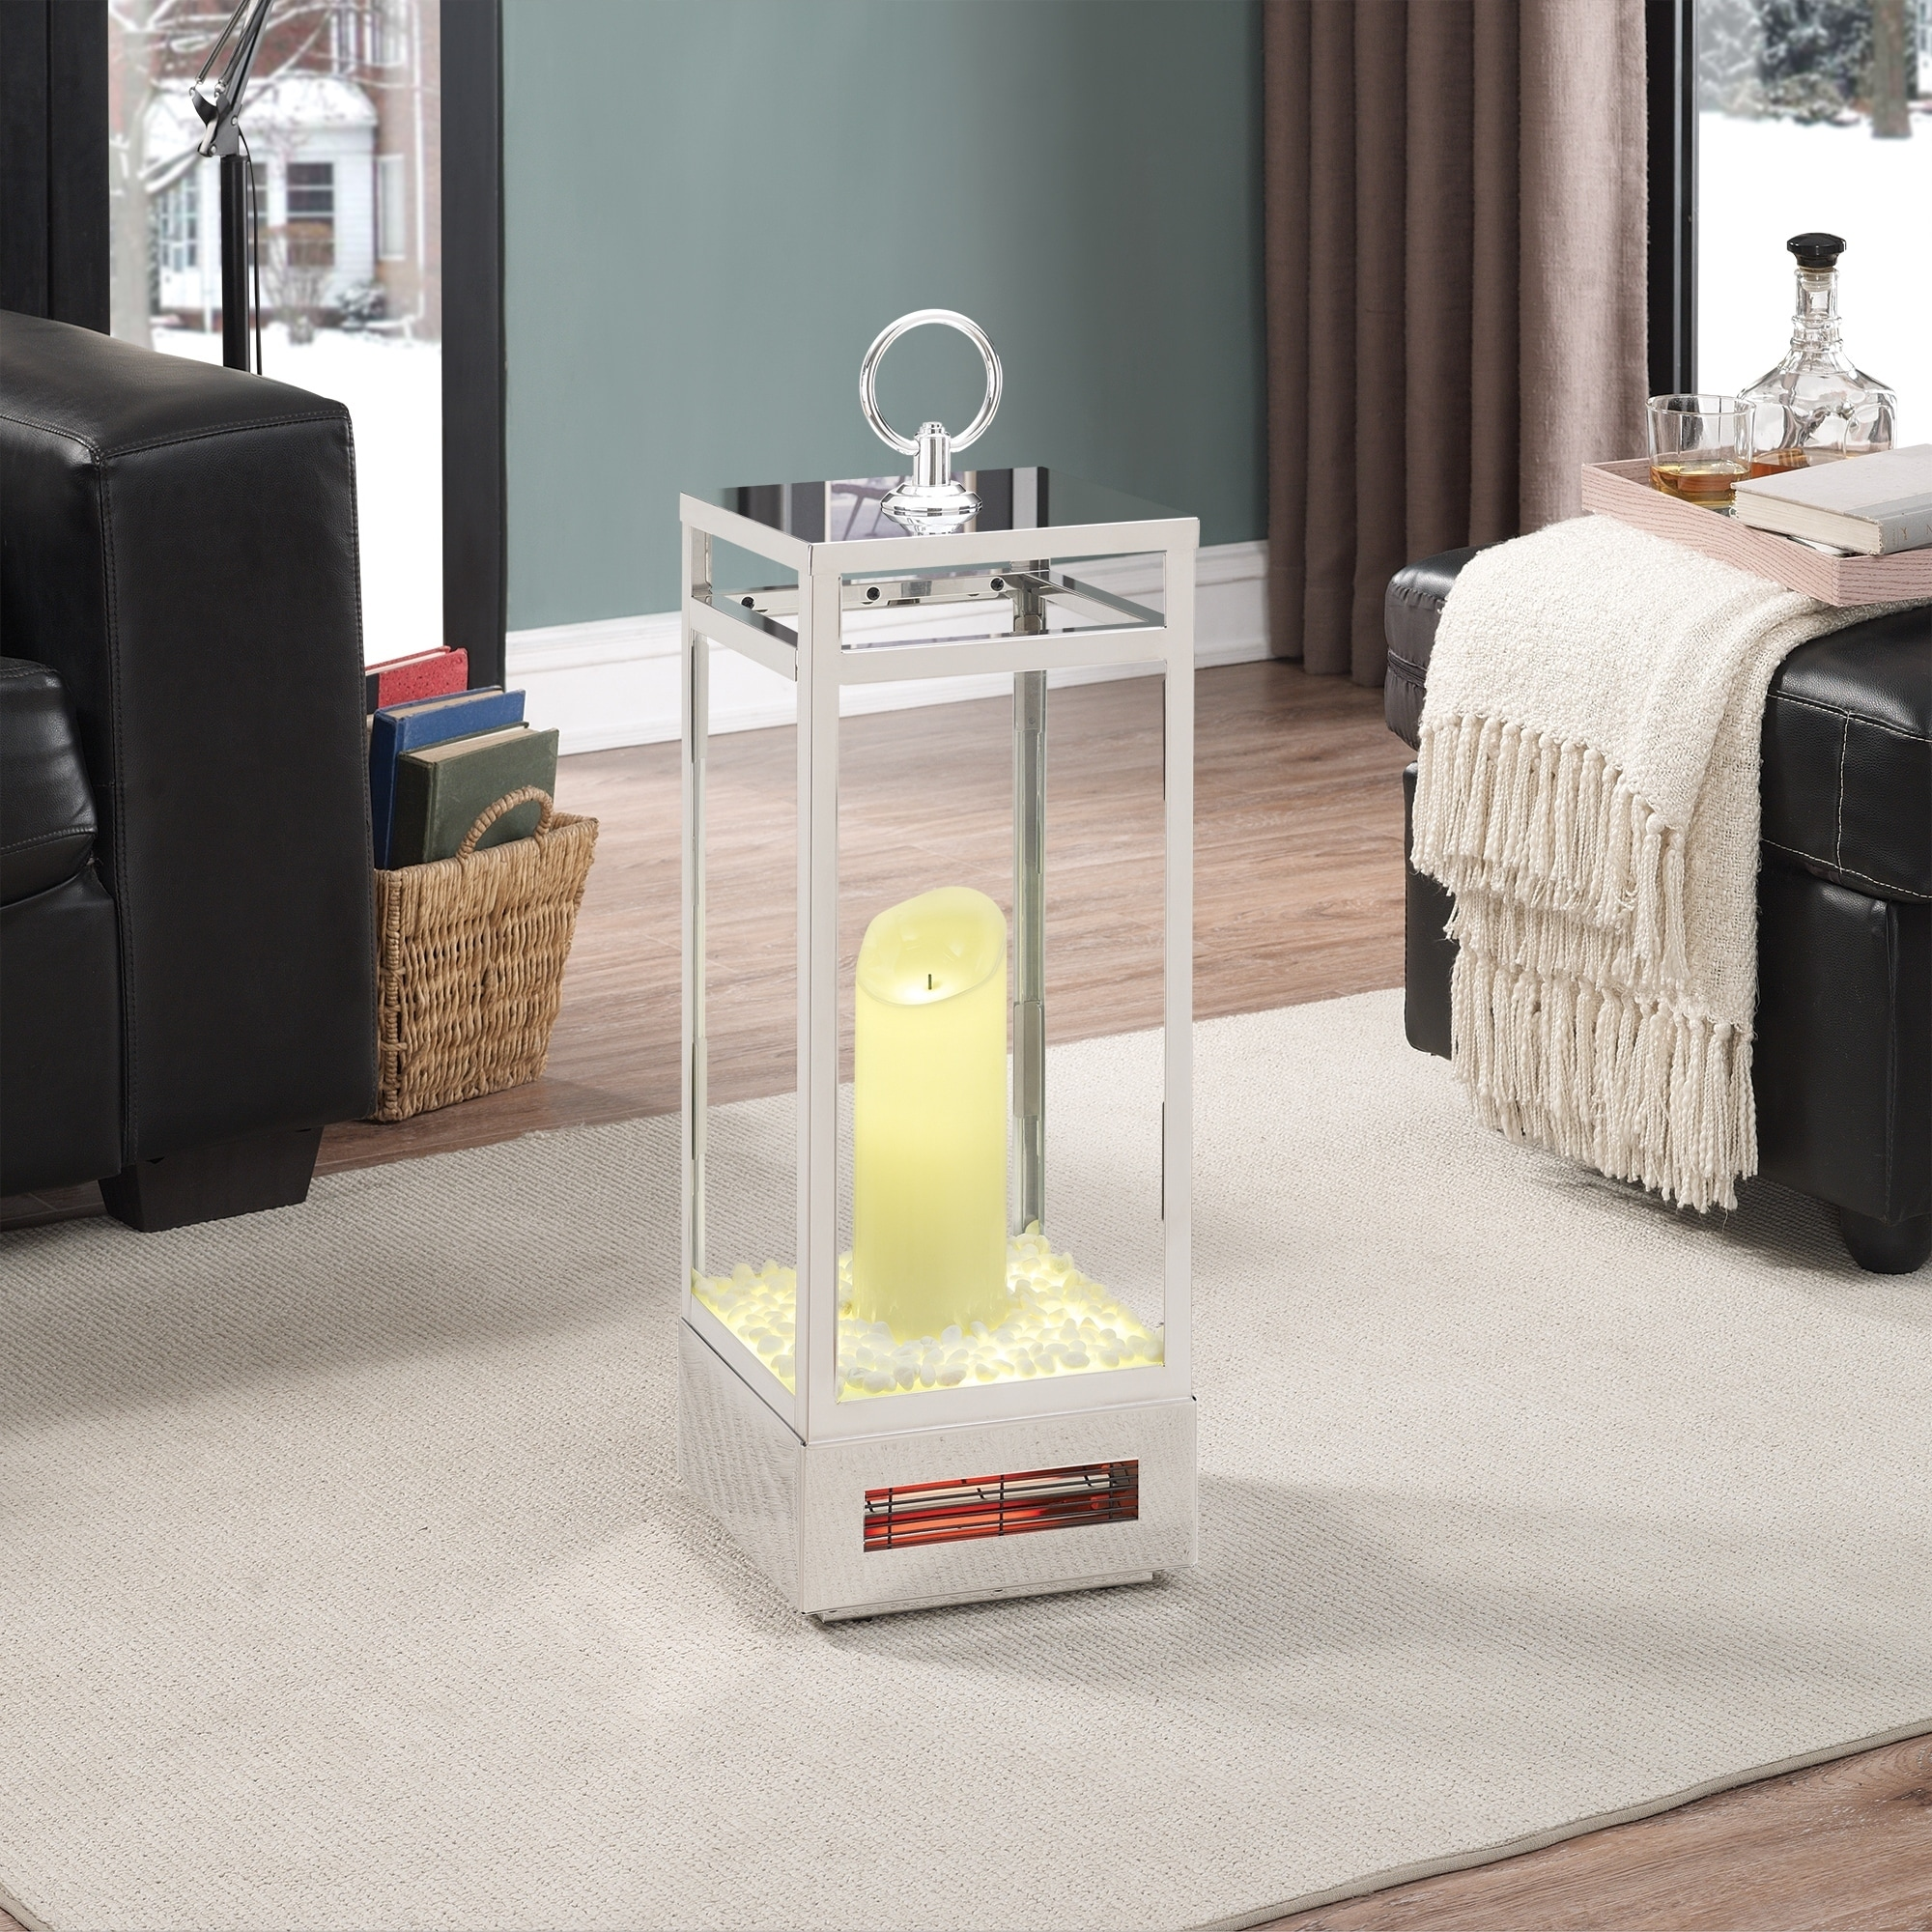 DURAFLAME 28.5-inch Portable LED Electric Flameless Candl...